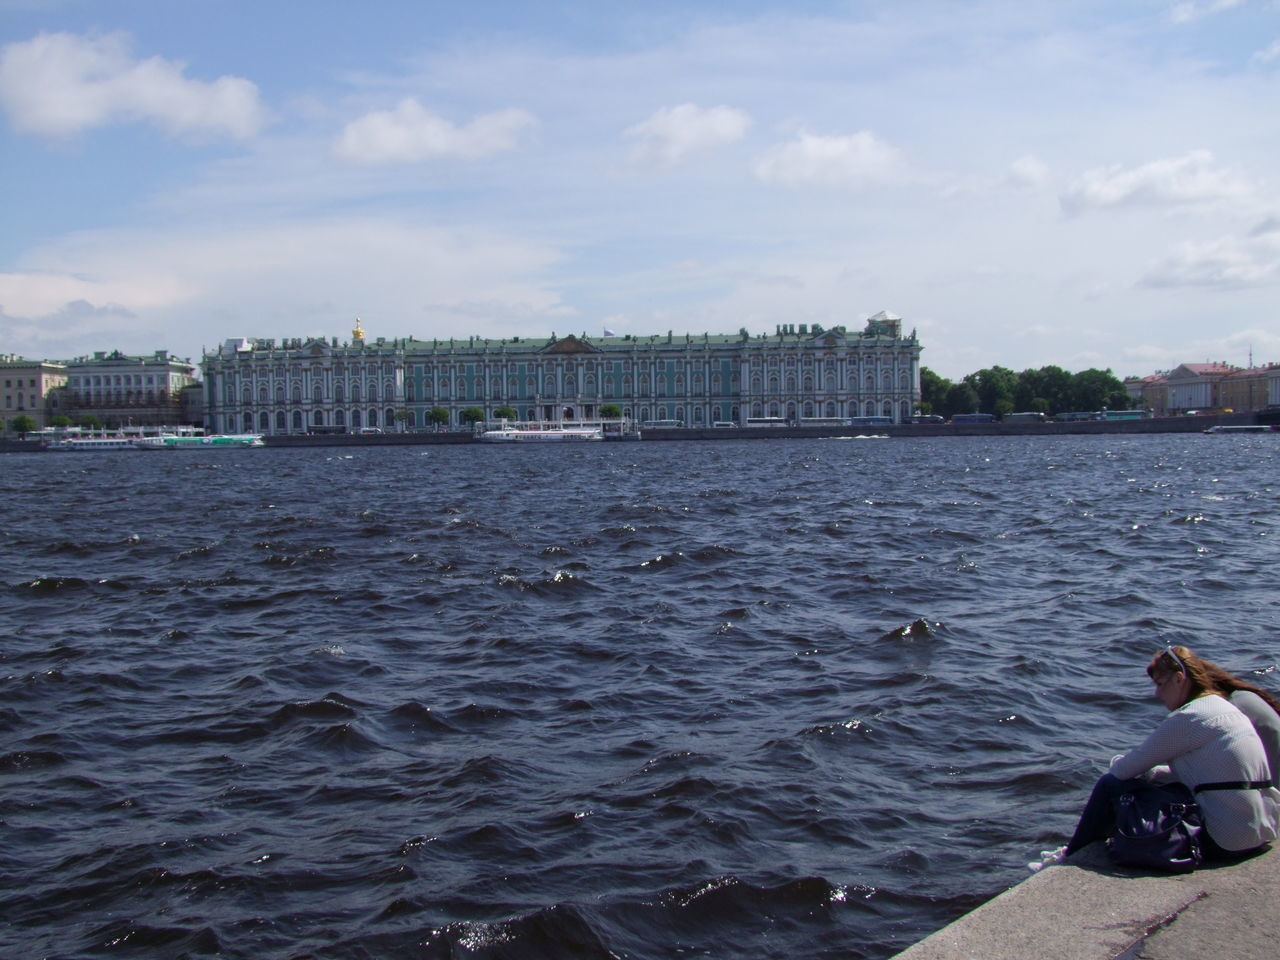 Hermitage Museum Across The Water Blue Sky White Clouds Boats Building Exterior Composition Distant View Façade Hermitage Museum History Incidental People Museum Outdoor Photography Ripples In The Water Russia Russian Architecture Saint Petersburg Sea Shoreline Tourist Attraction  Tourist Destination Traditional Architecture Waves